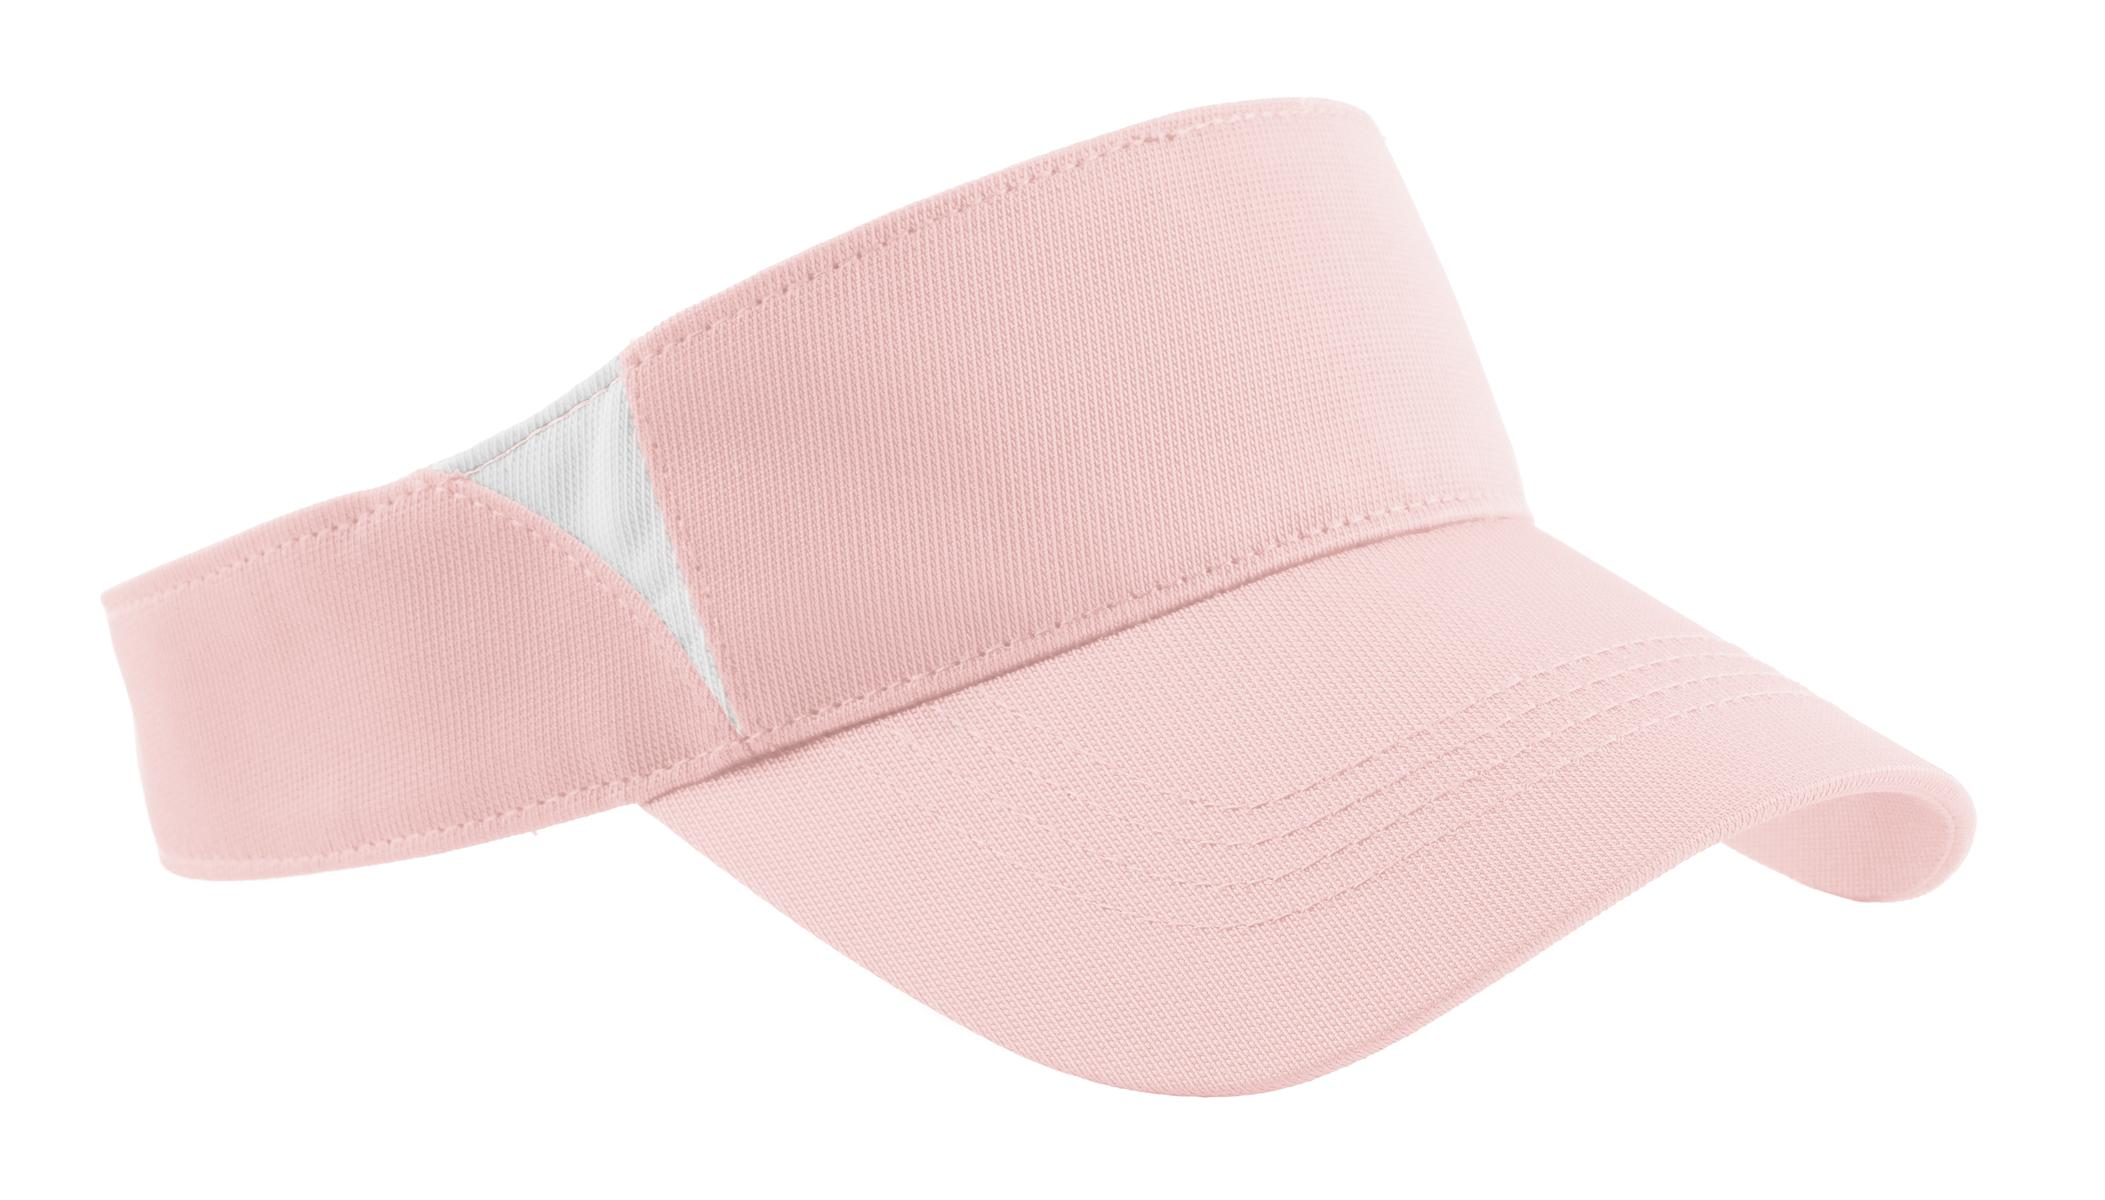 Sport-Tek ®  Dry Zone ®  Colorblock Visor.  STC13 - Light Pink/White